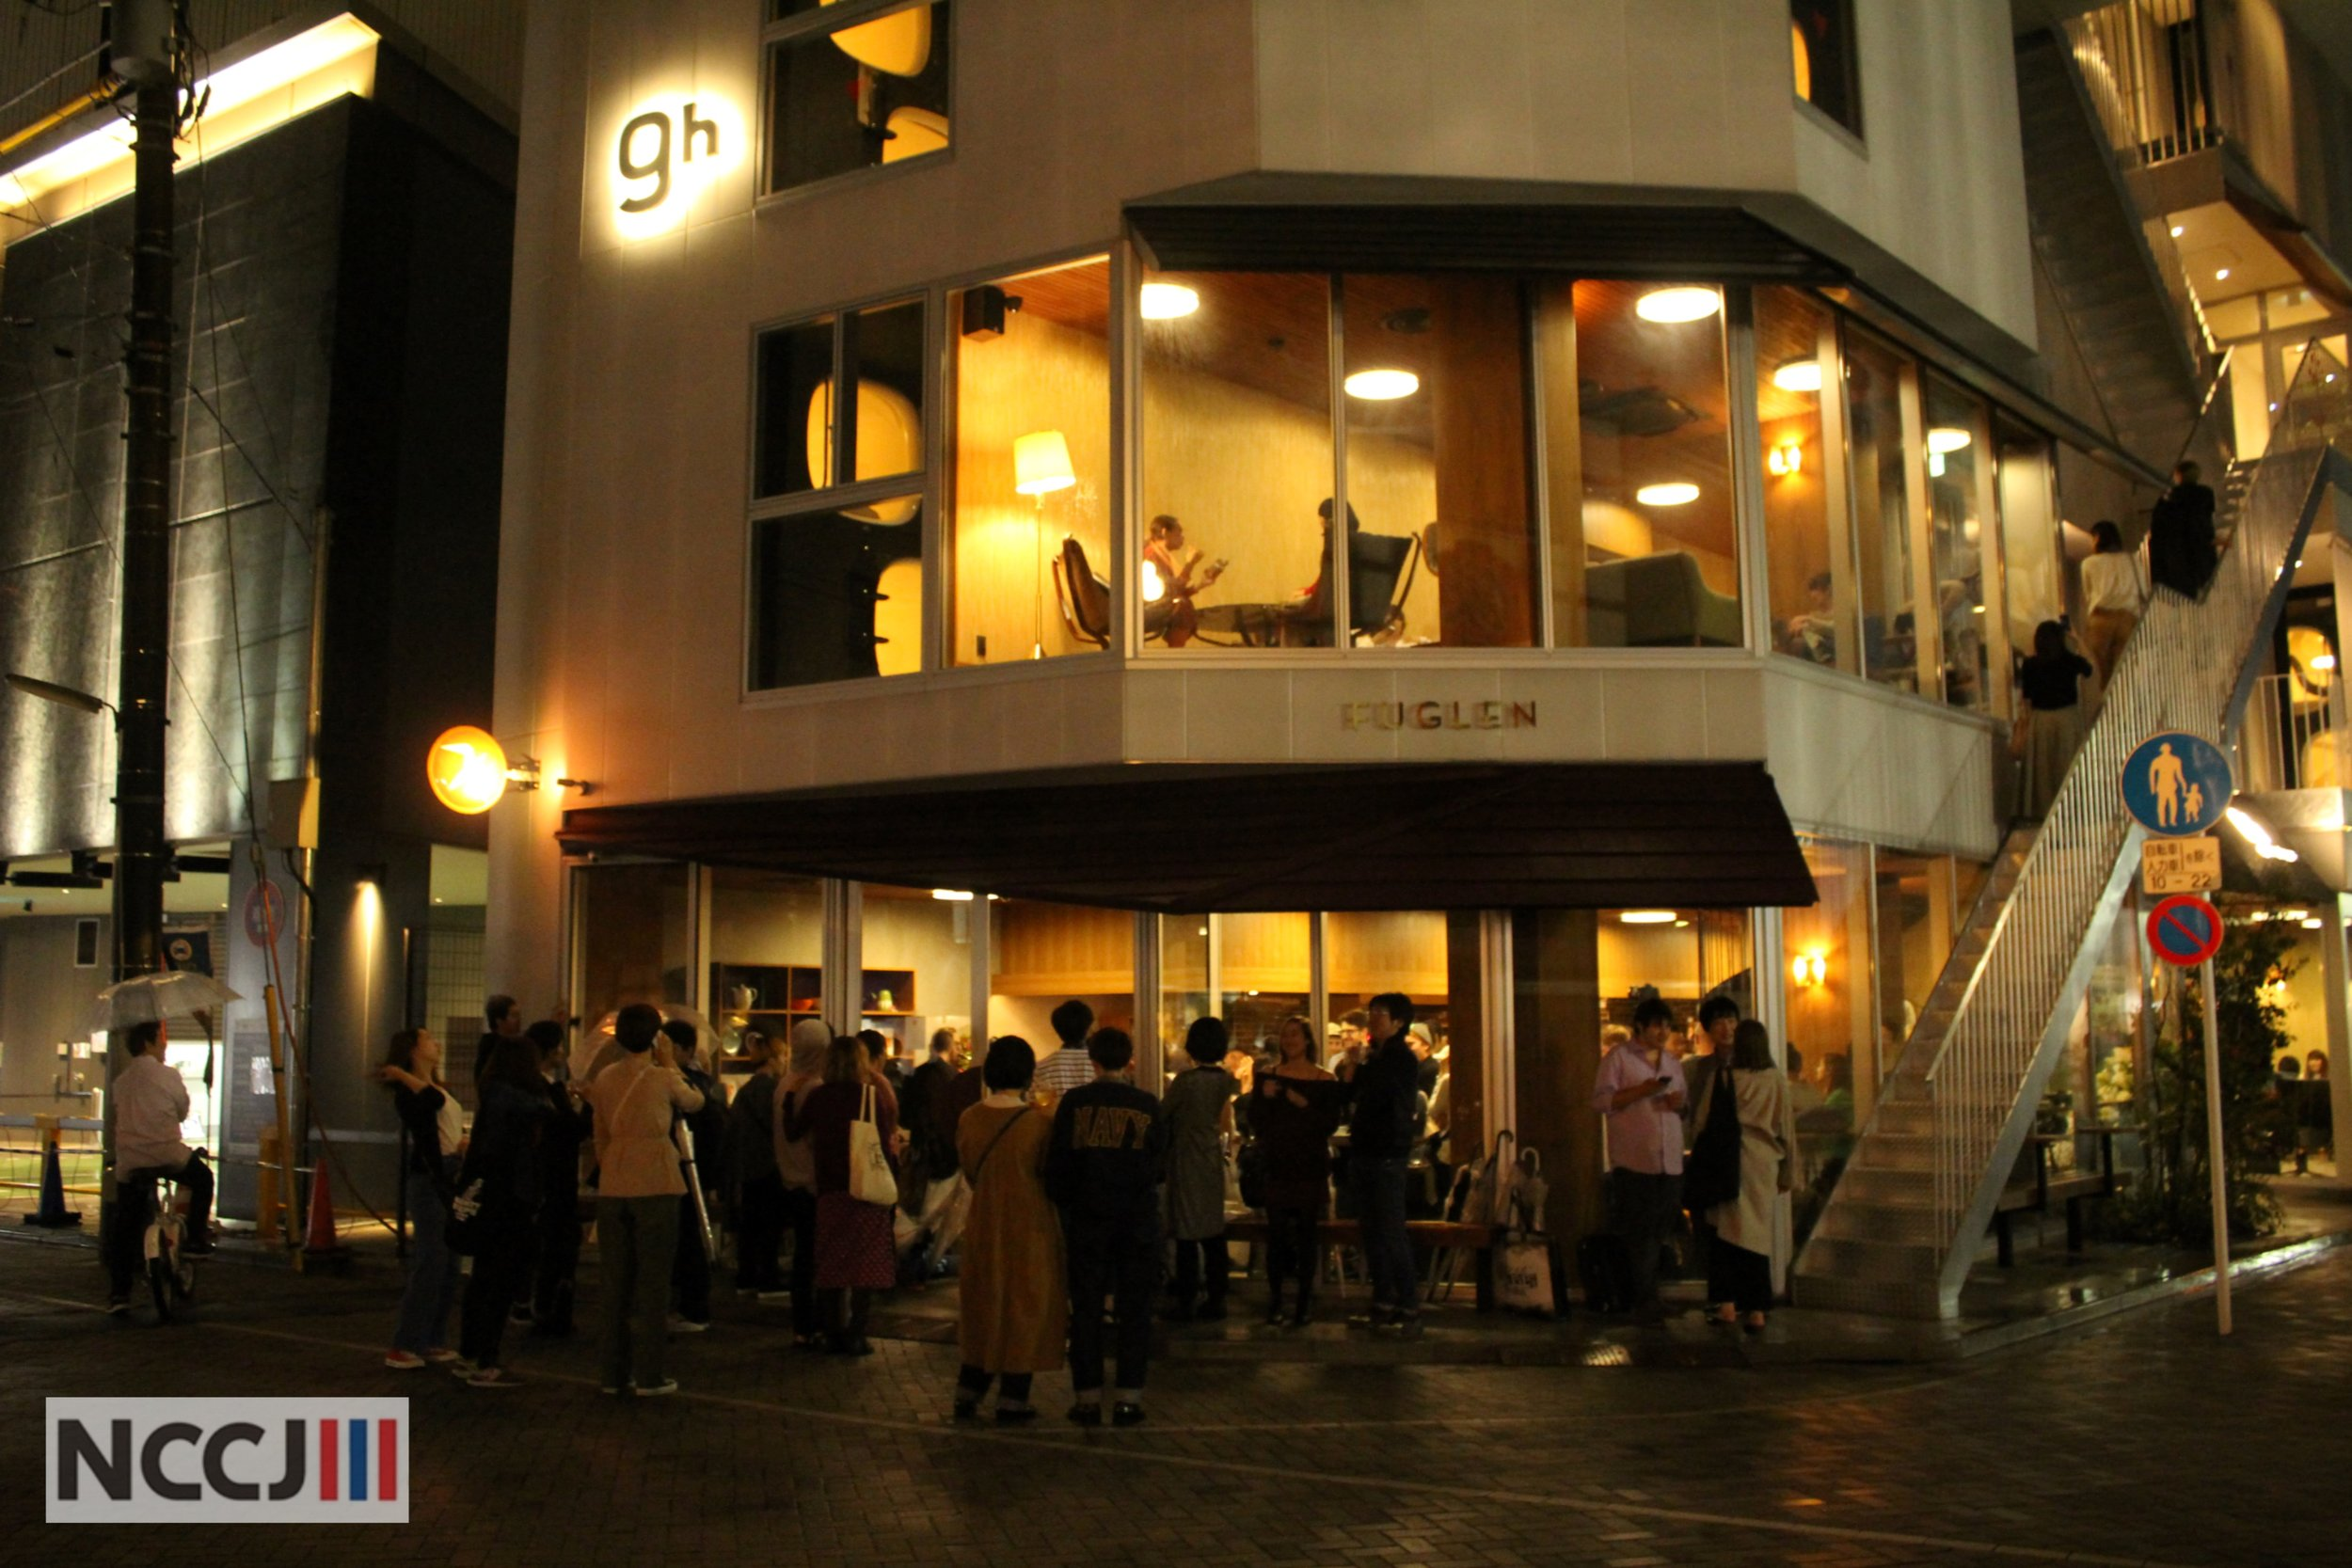 The new Fuglen is located in Asakusa, in the same building as the capsule hotel Nine Hours